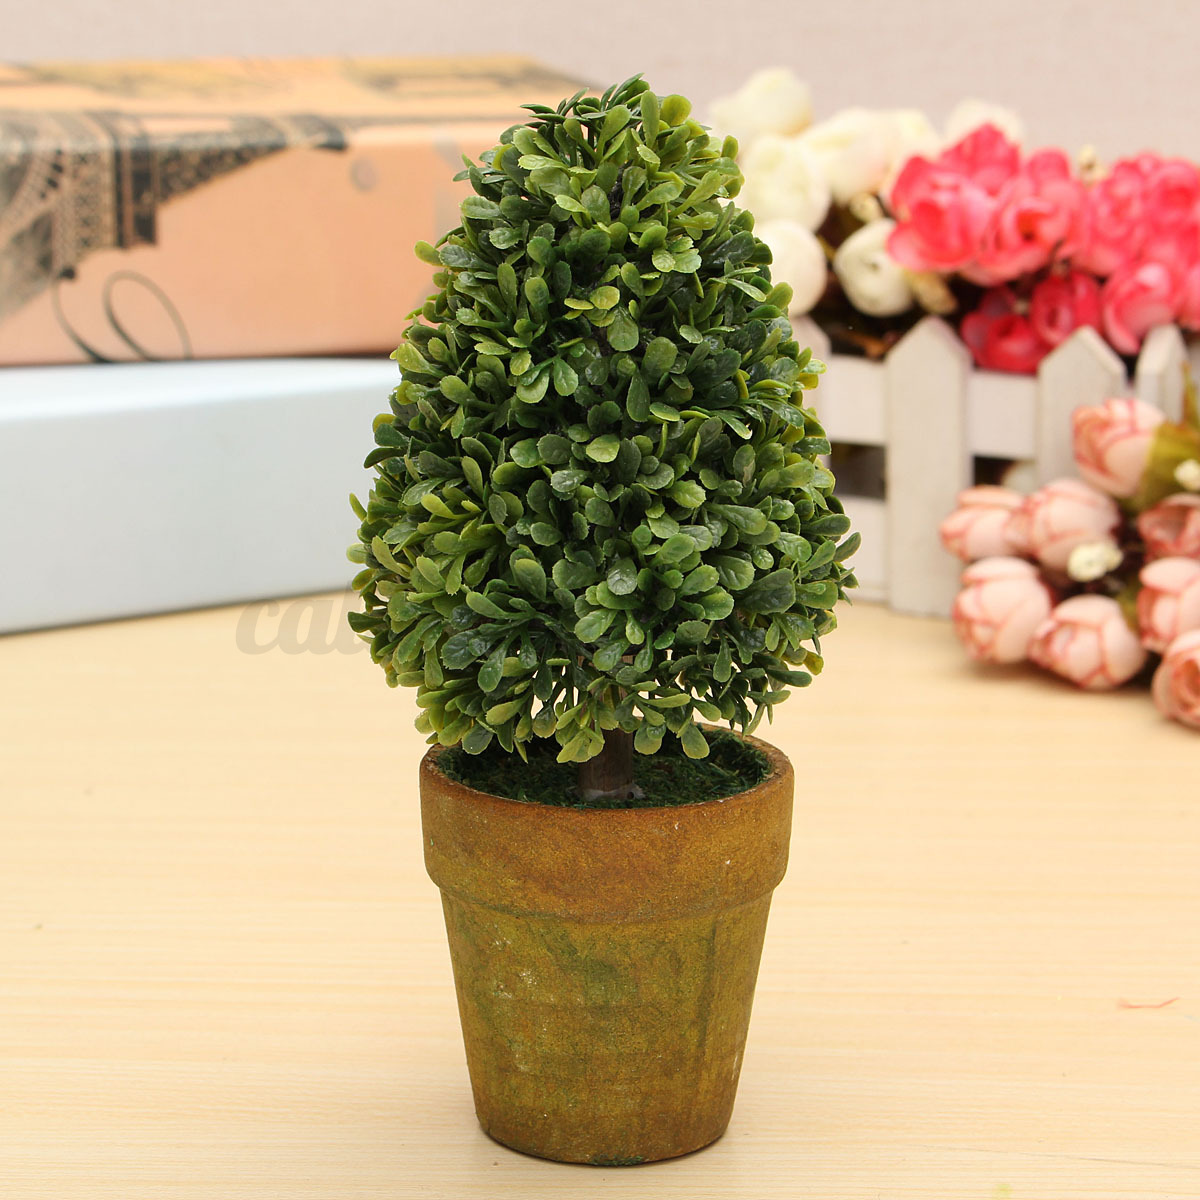 Artificial Plastic Trees In Pots Plant Potted Decor Garden